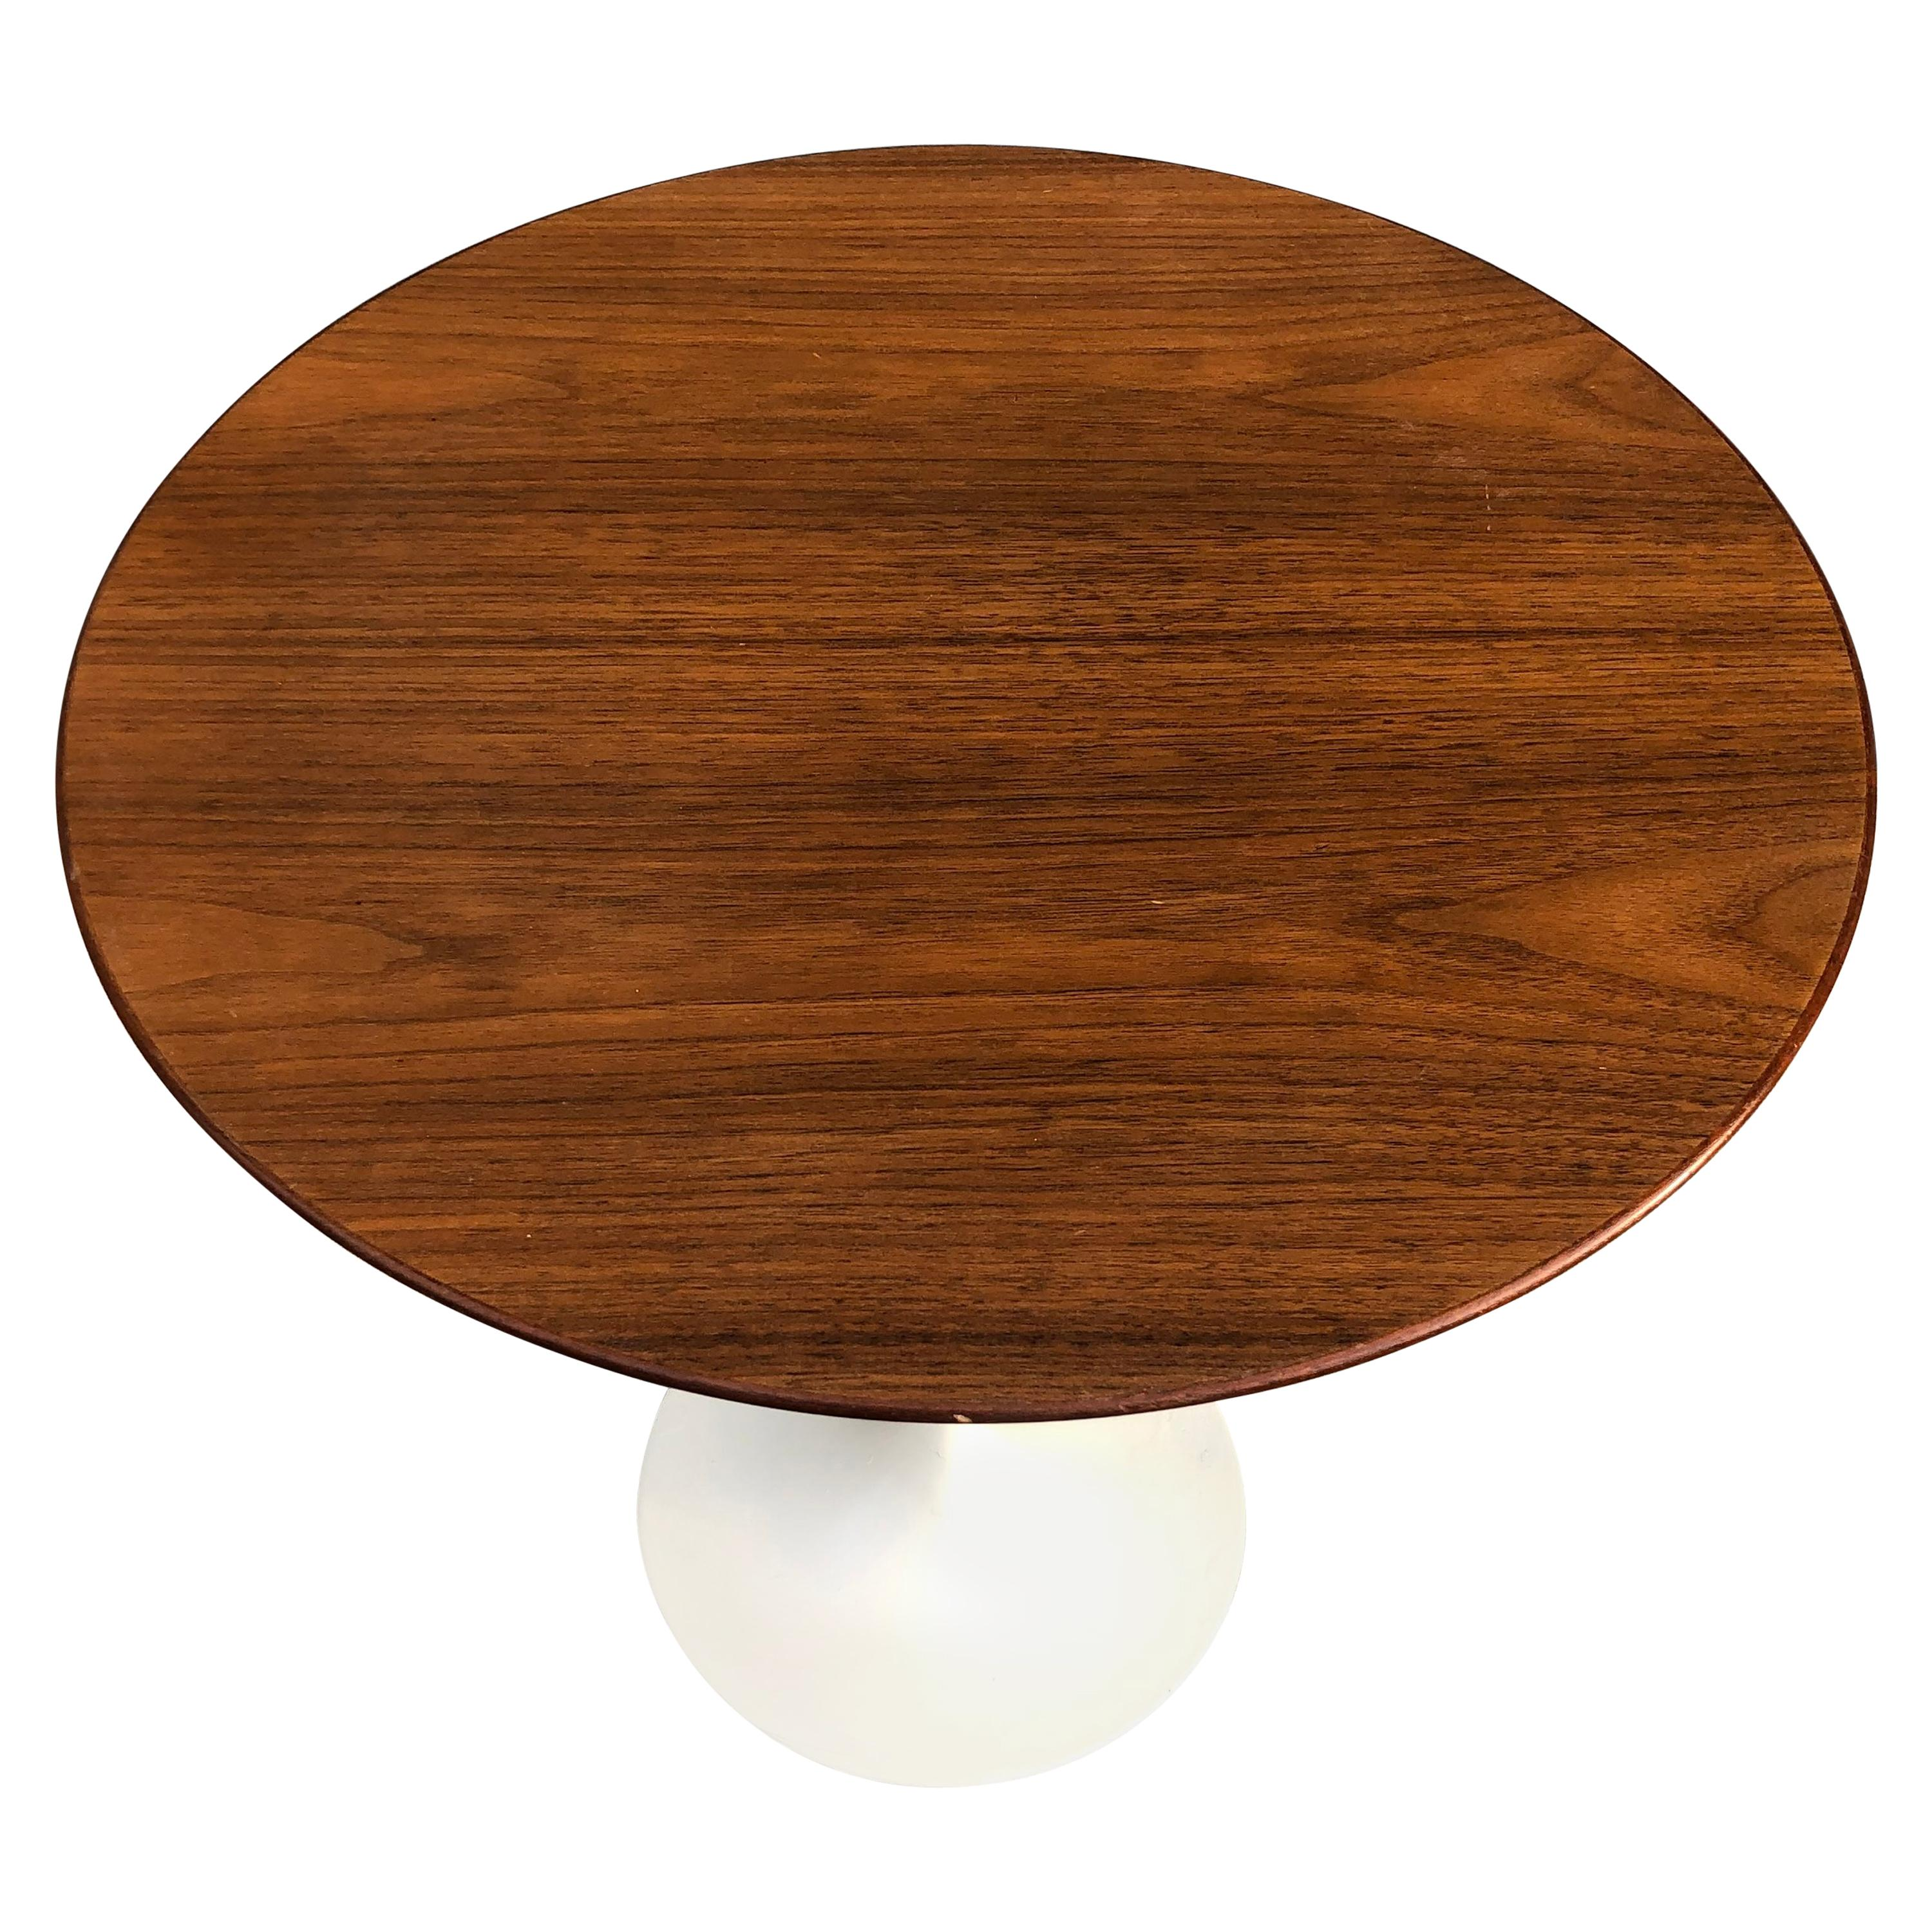 Eero Saarinen for Knoll Walnut Tulip Side Table